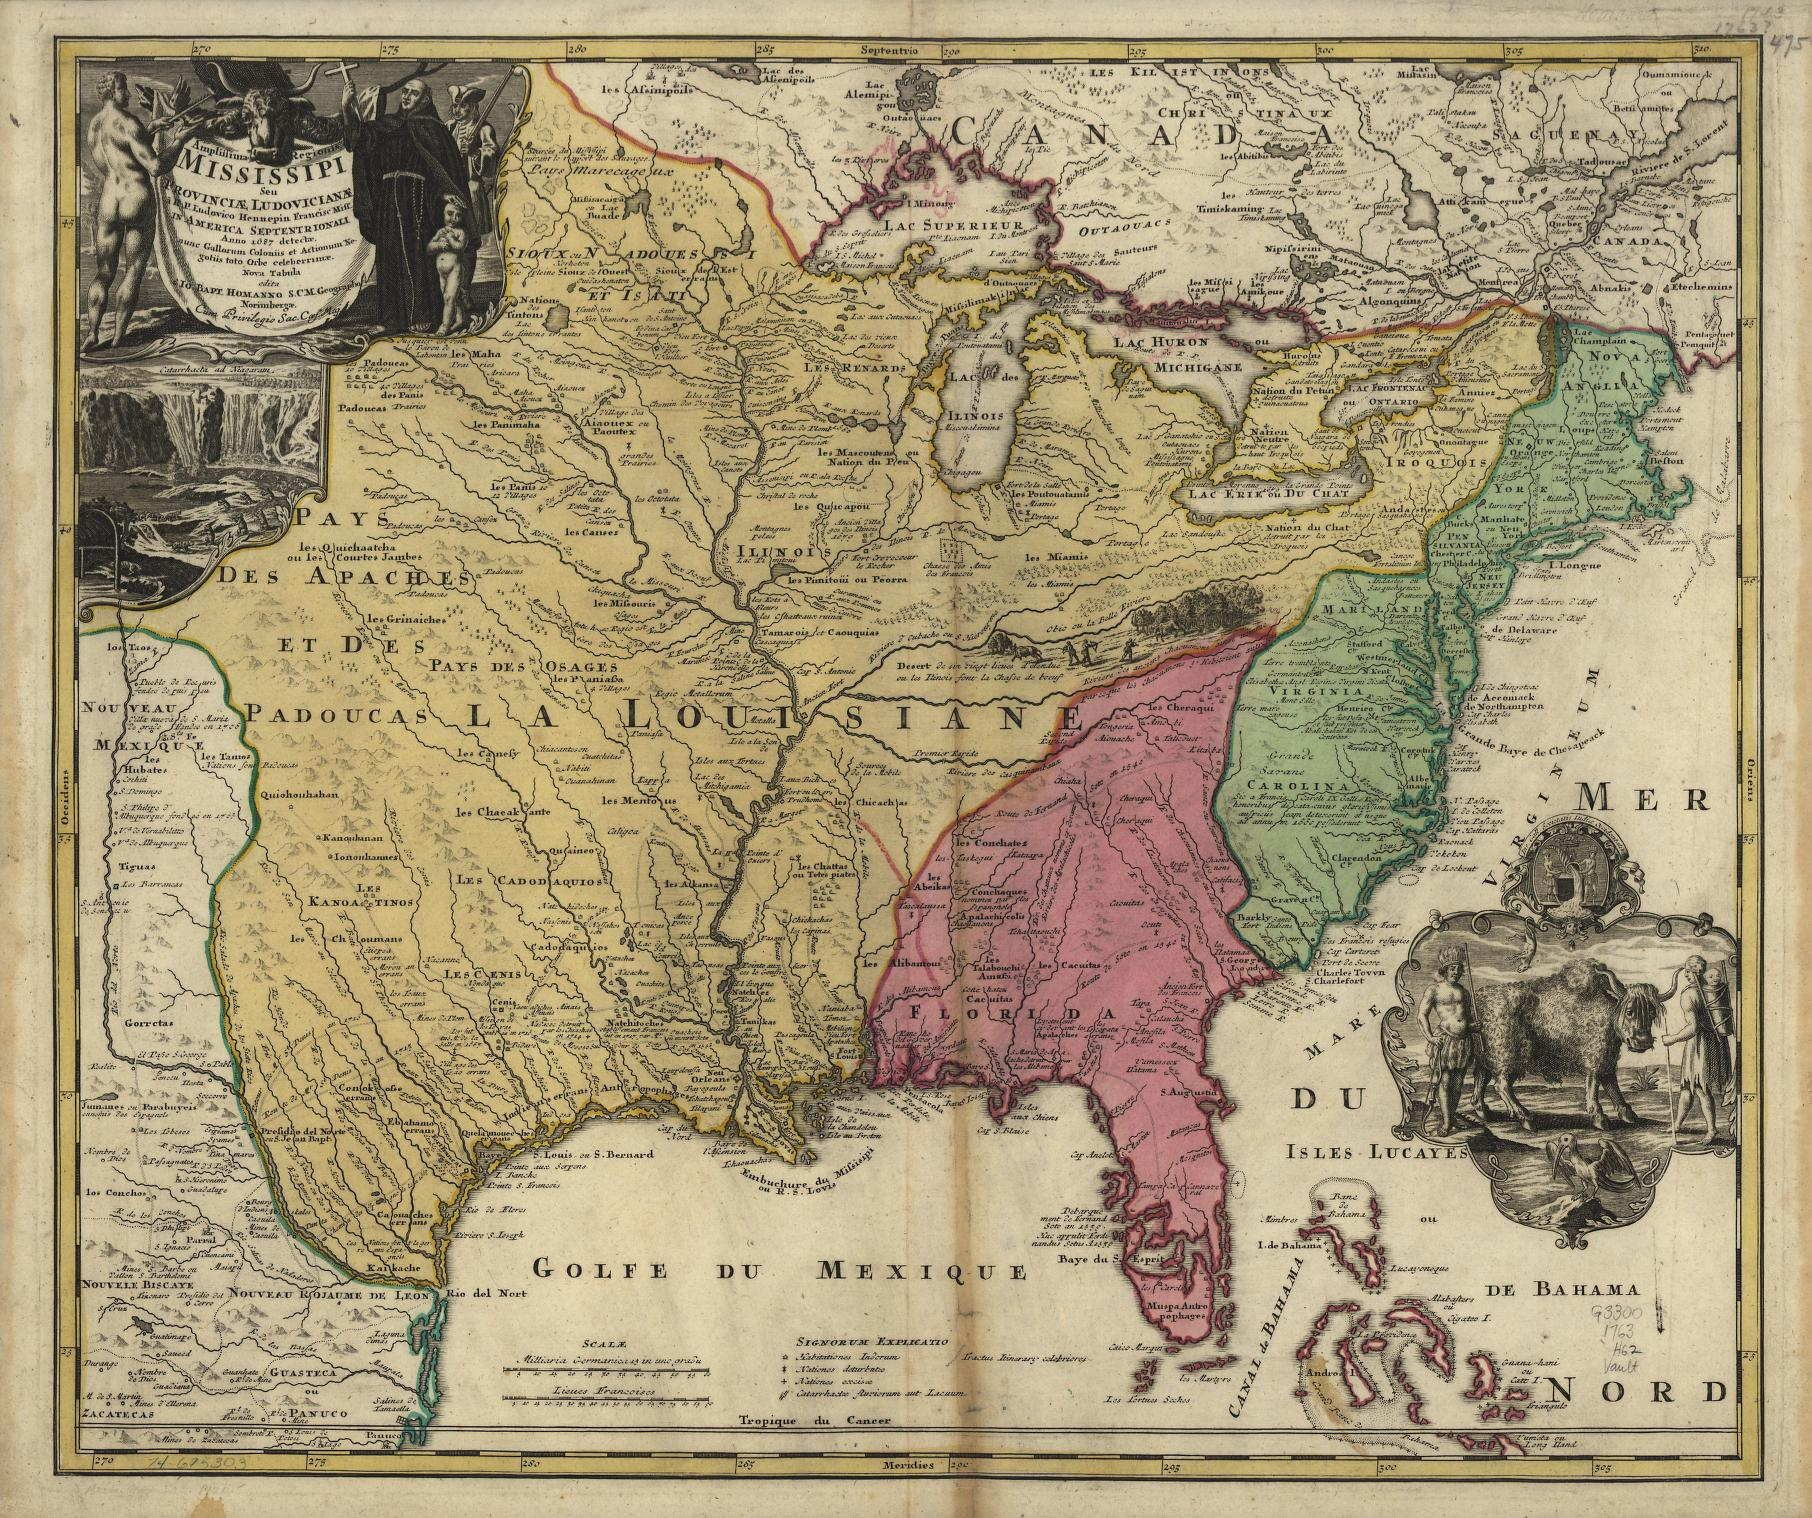 Map of the United States in 1700